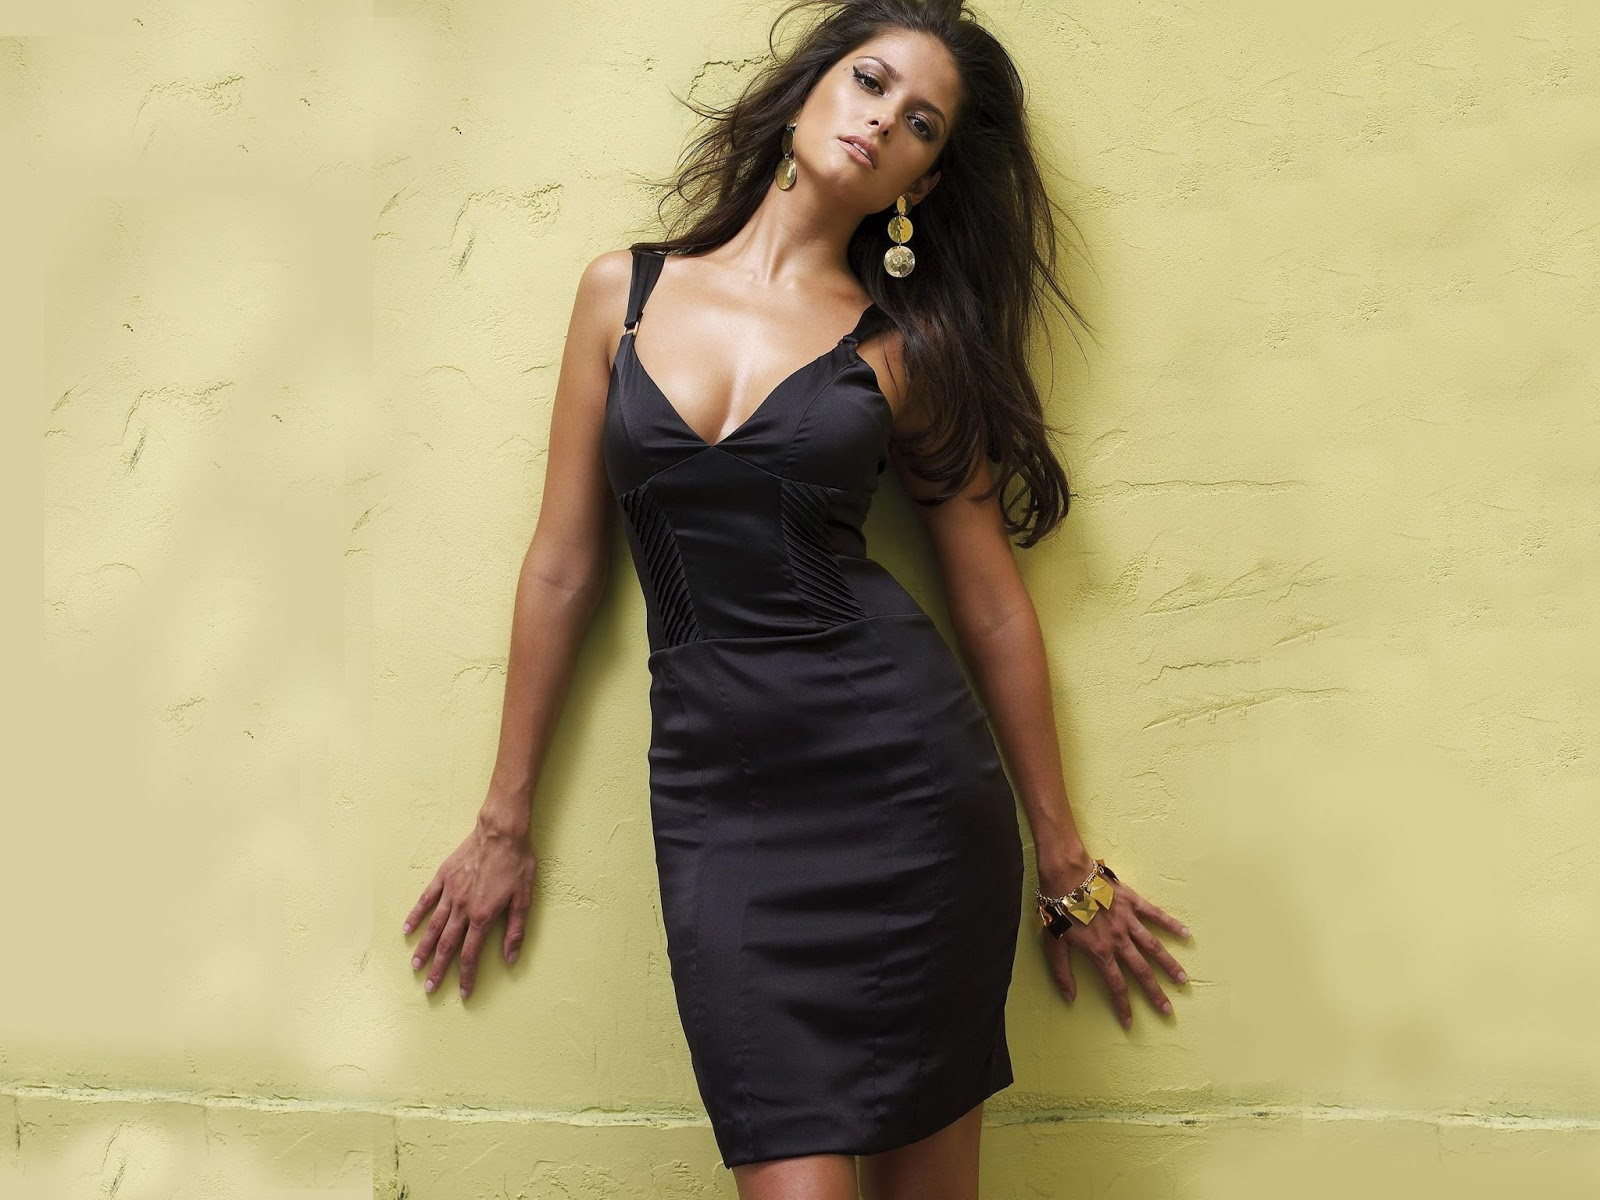 Indian Girl Wallpaper Free Download Carla Ossa Hd Wallpapers Most Beautiful Places In The